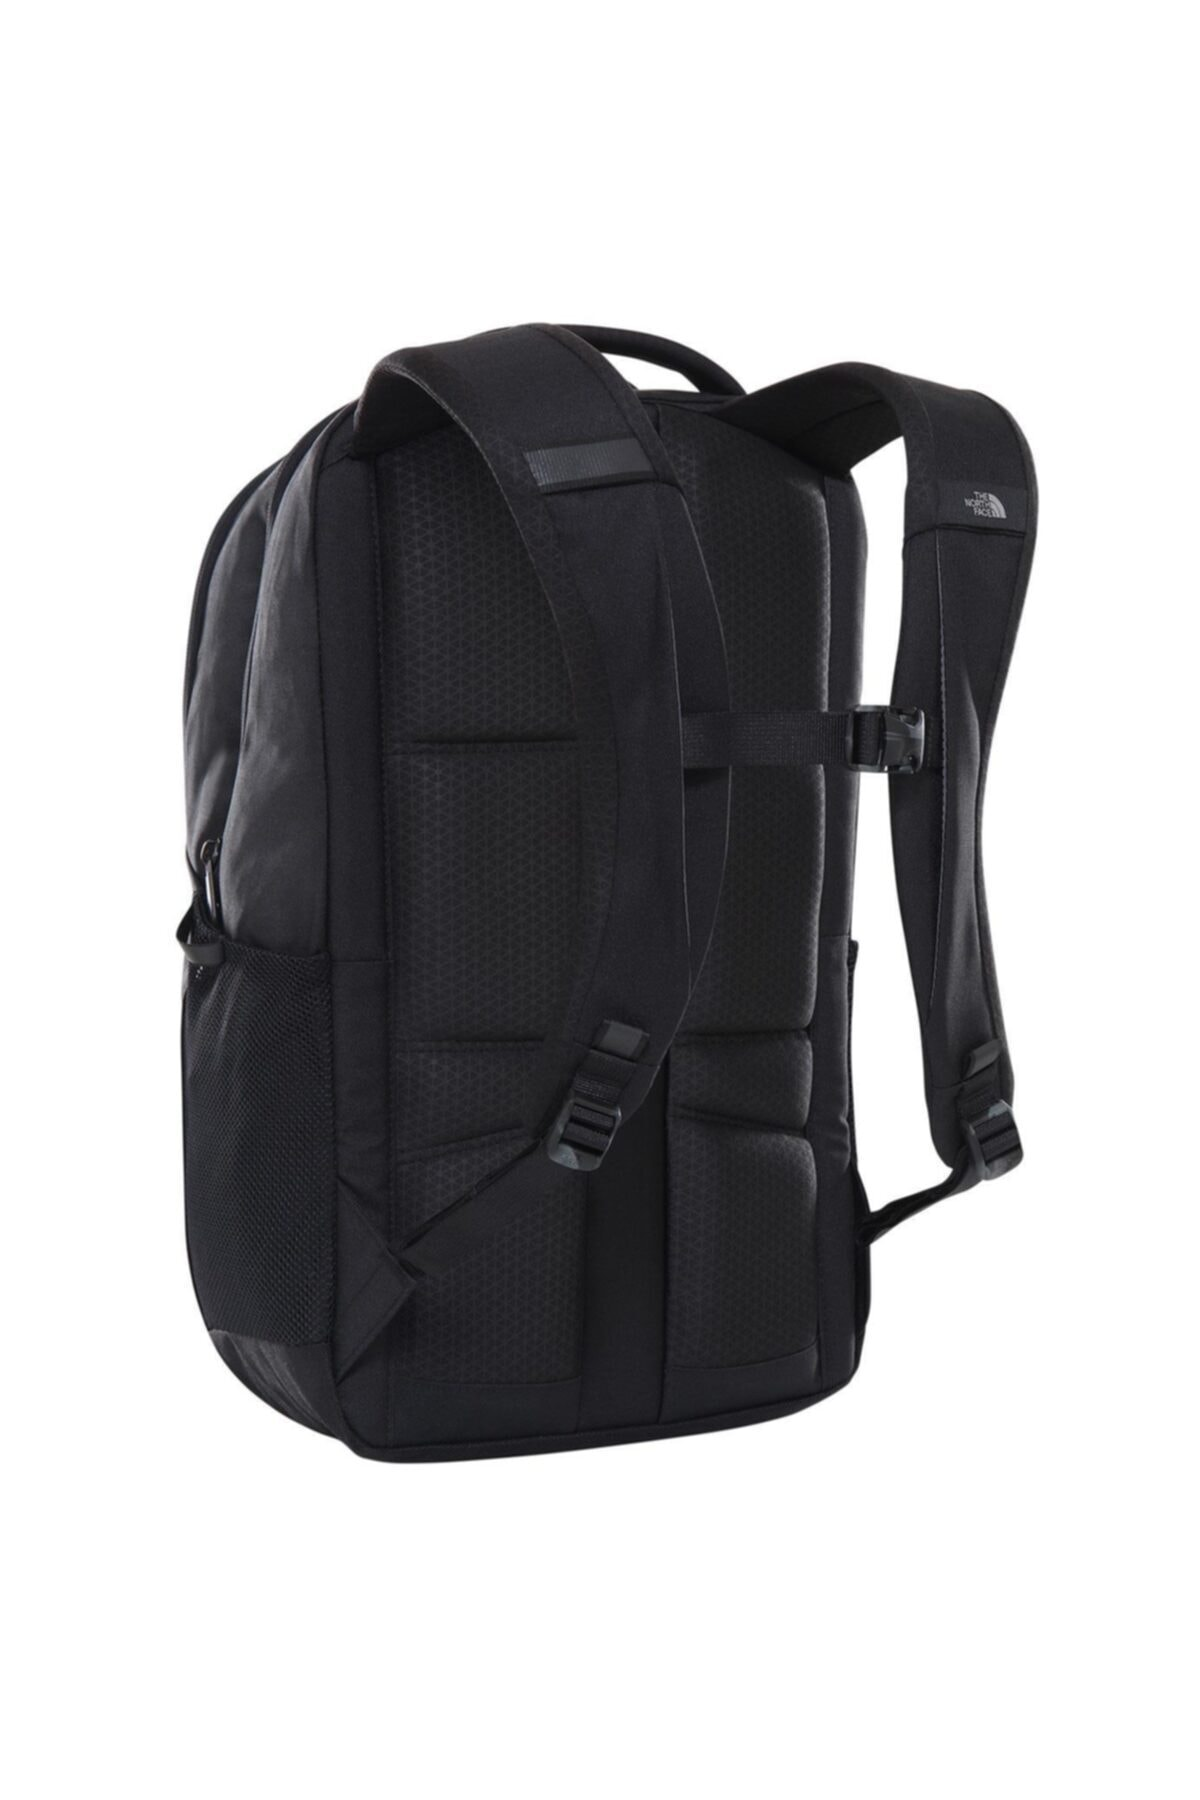 THE NORTH FACE The Northface Vault Çanta Nf0a3vy2jk31 2